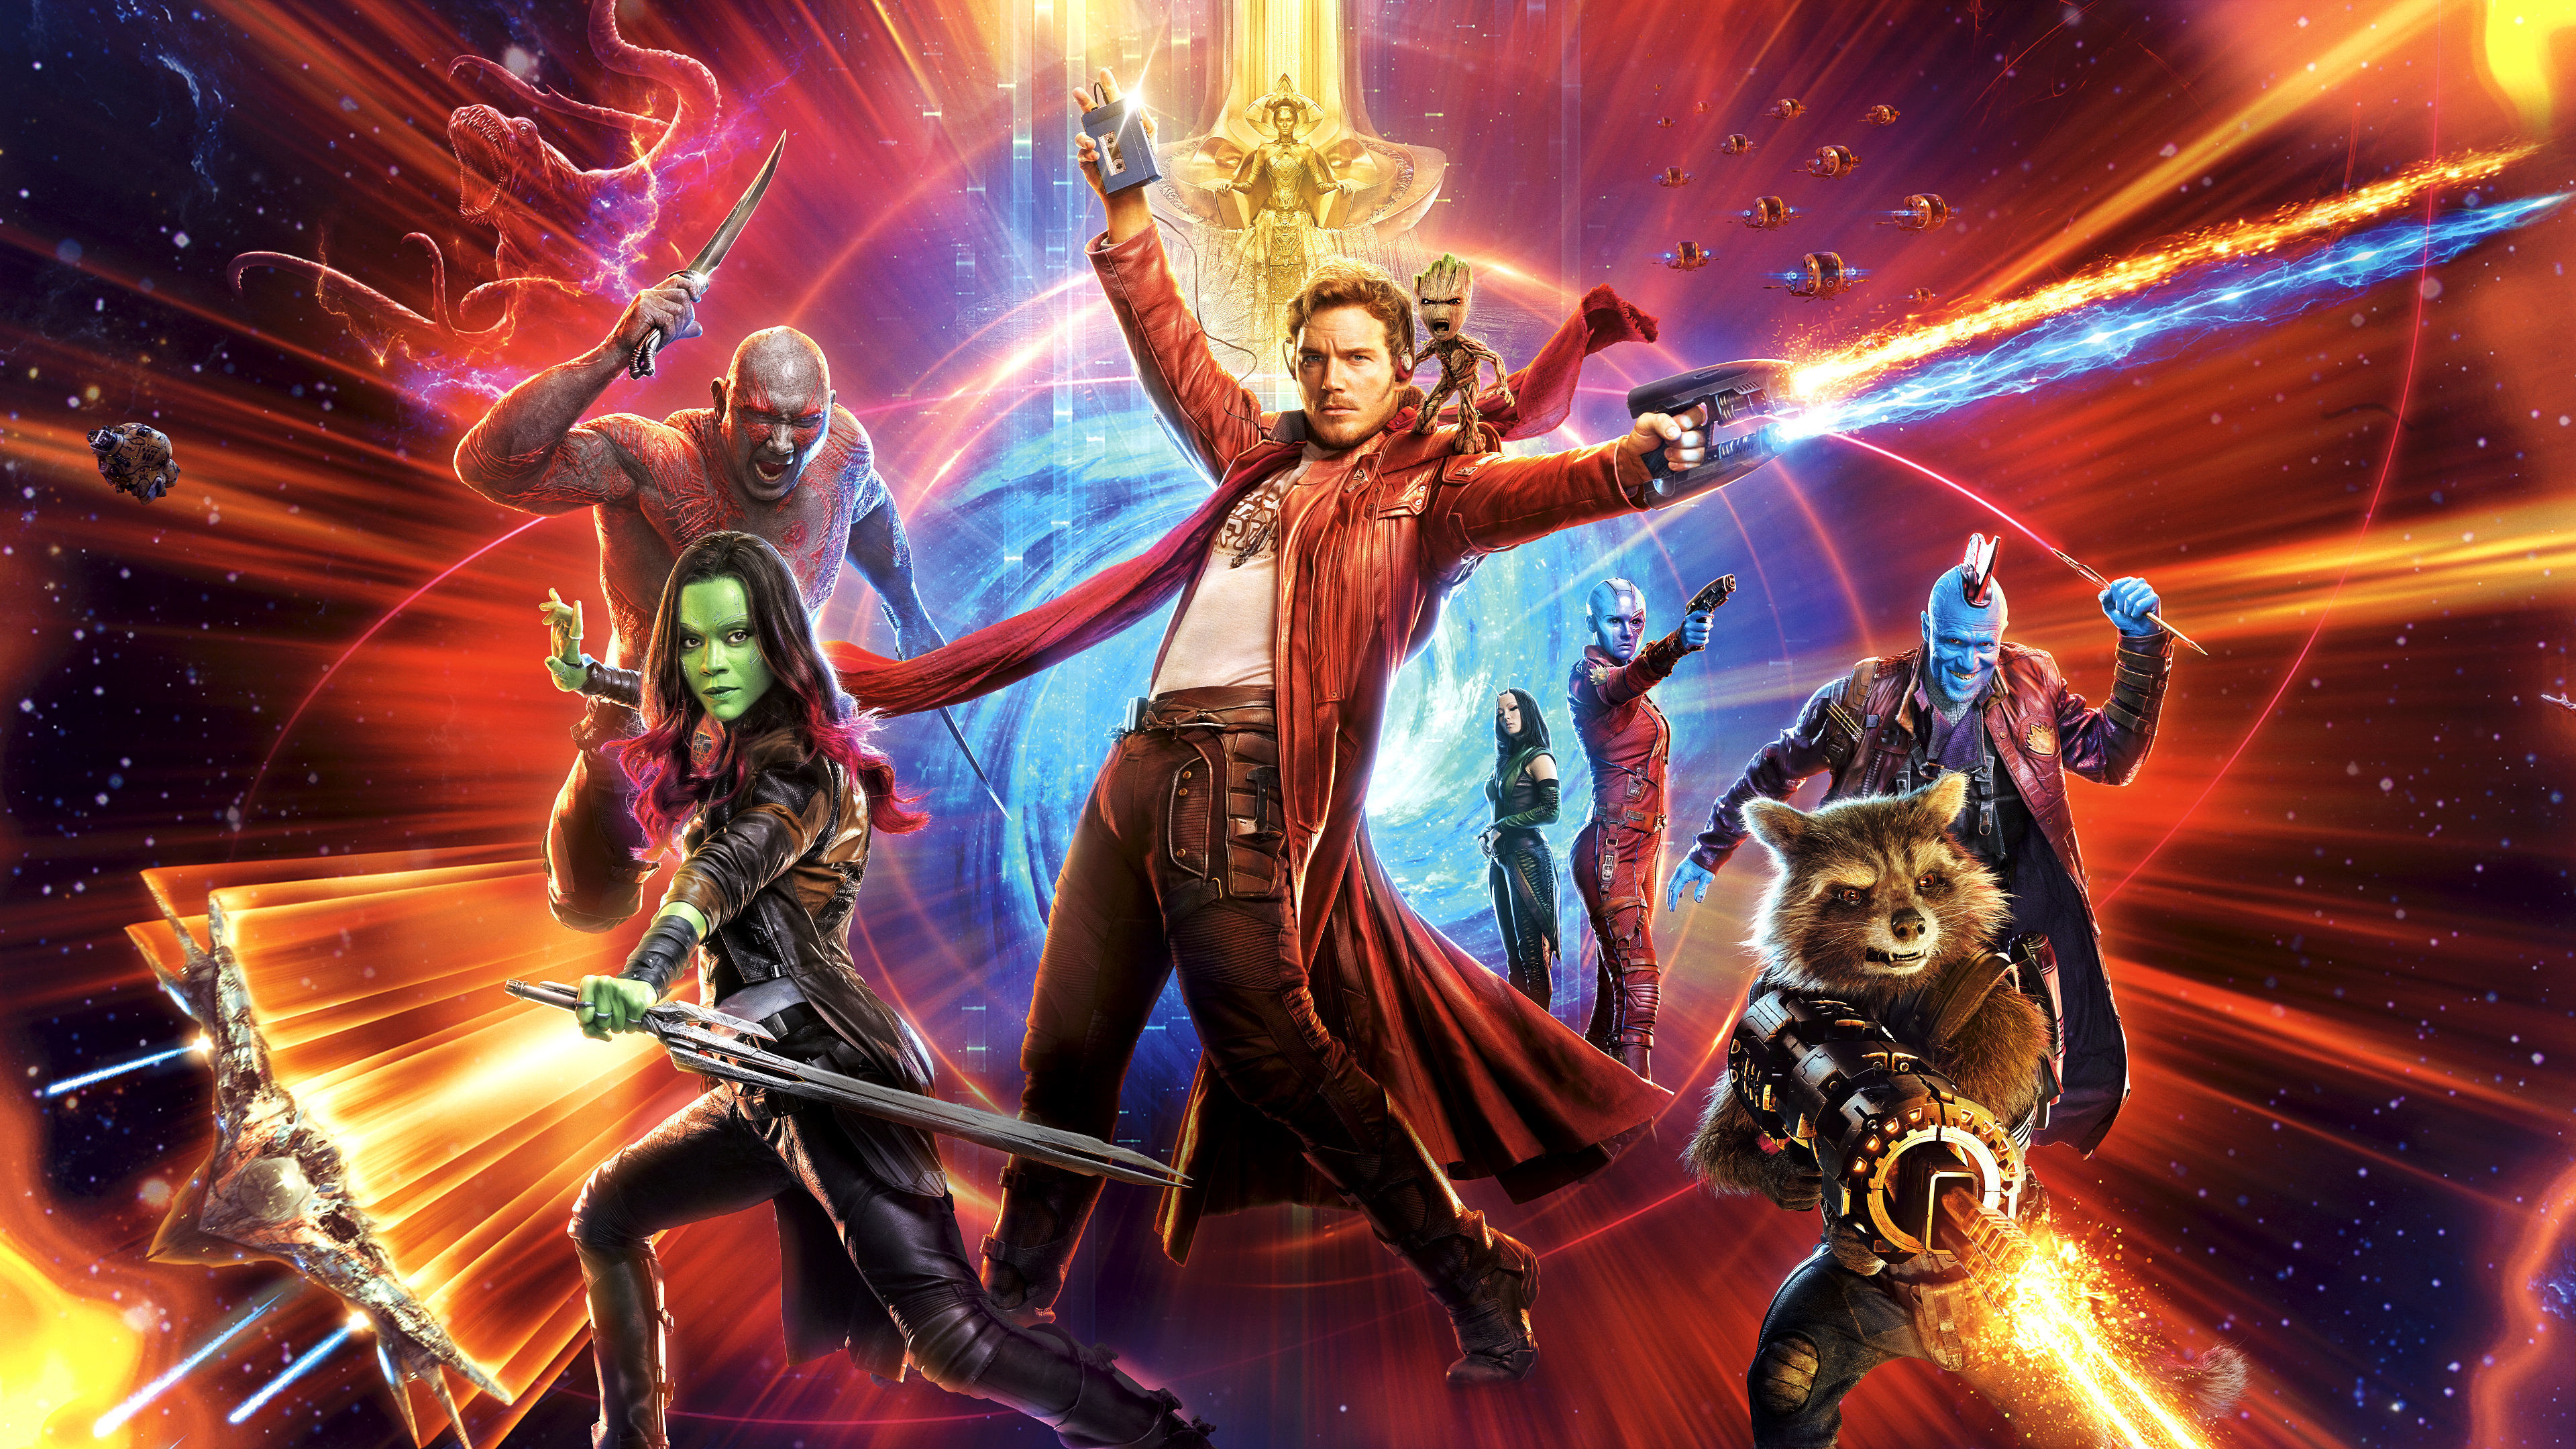 The game will immerse players in a dynamic challenging and galactic pinball environment where StarLord Rocket Gamora Drax the Destroyer and Groot battle Ronan